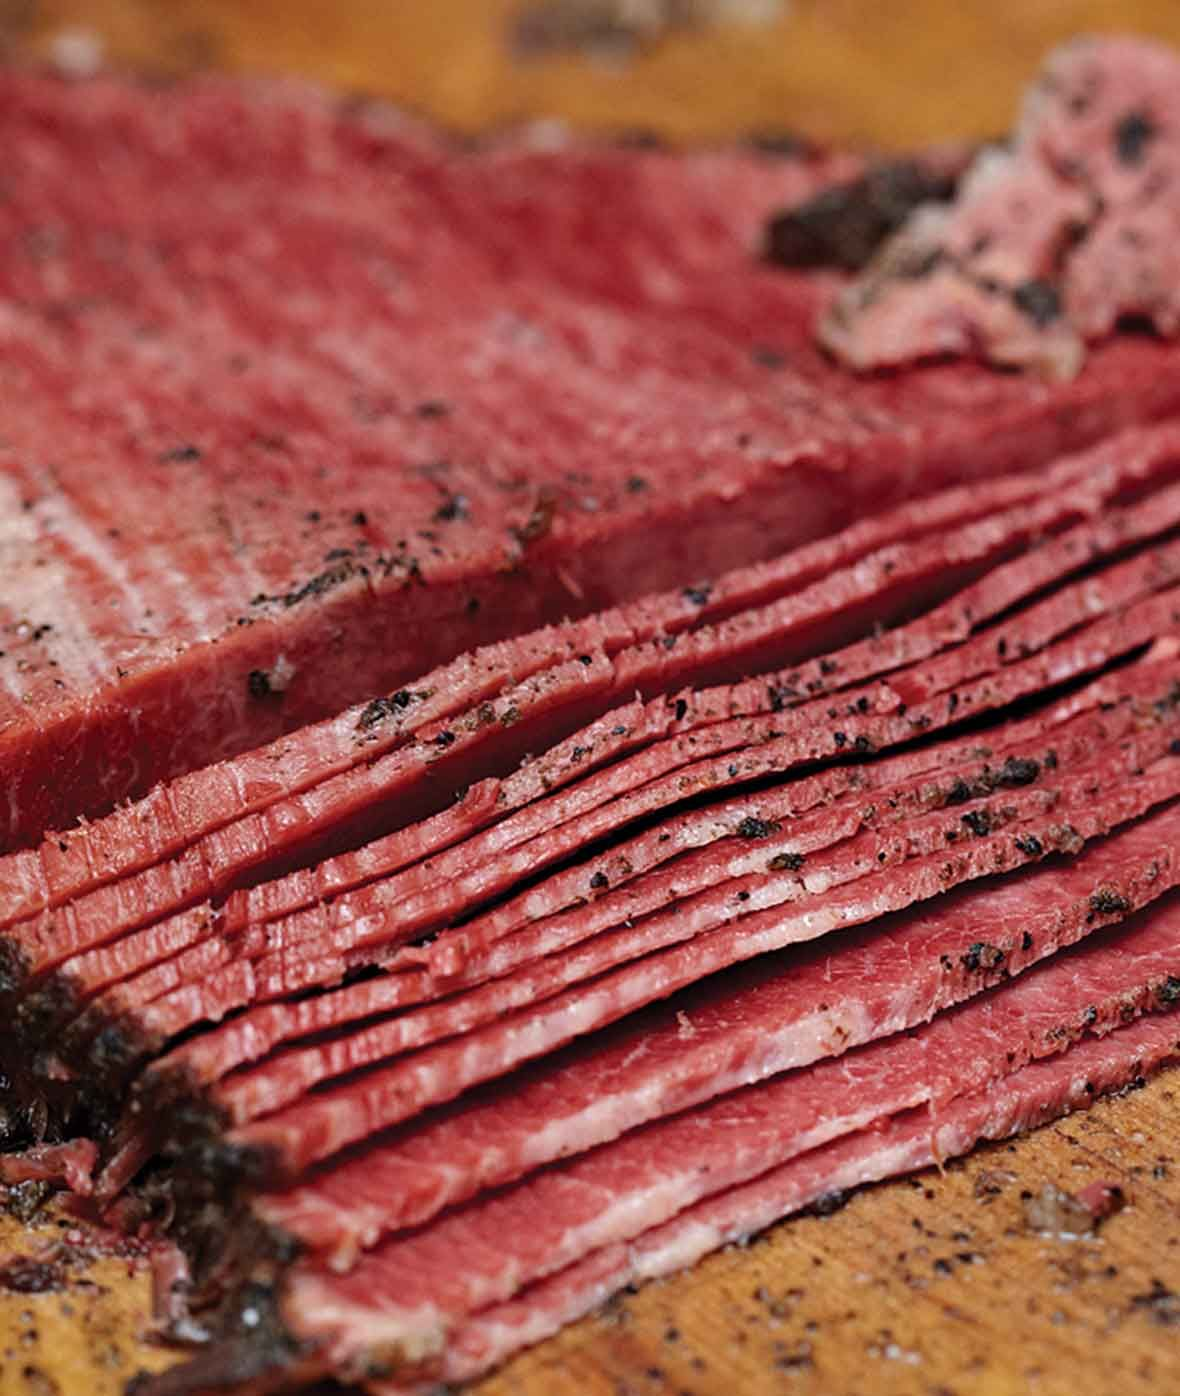 Homemade Pastrami Recipe With Images Smoked Food Recipes Homemade Pastrami Beef Recipes